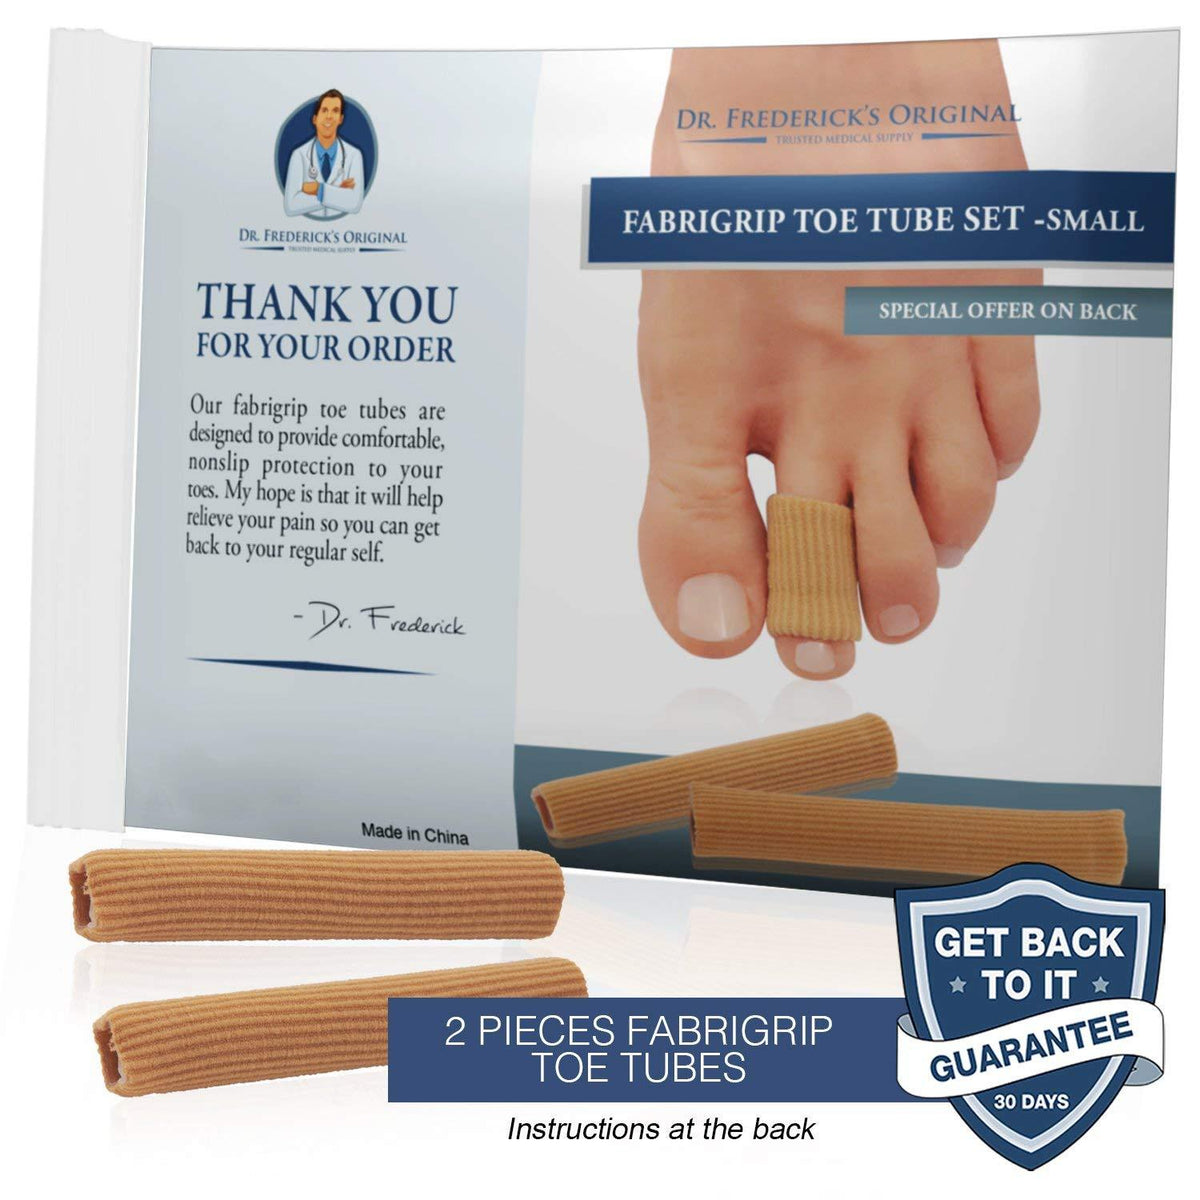 Dr. Frederick's Original Fabrigrip Toe Protectors -- 4 Pieces - for Corns, Calluses, Blisters, and Ingrown Toenails Foot Pain Dr. Frederick's Original